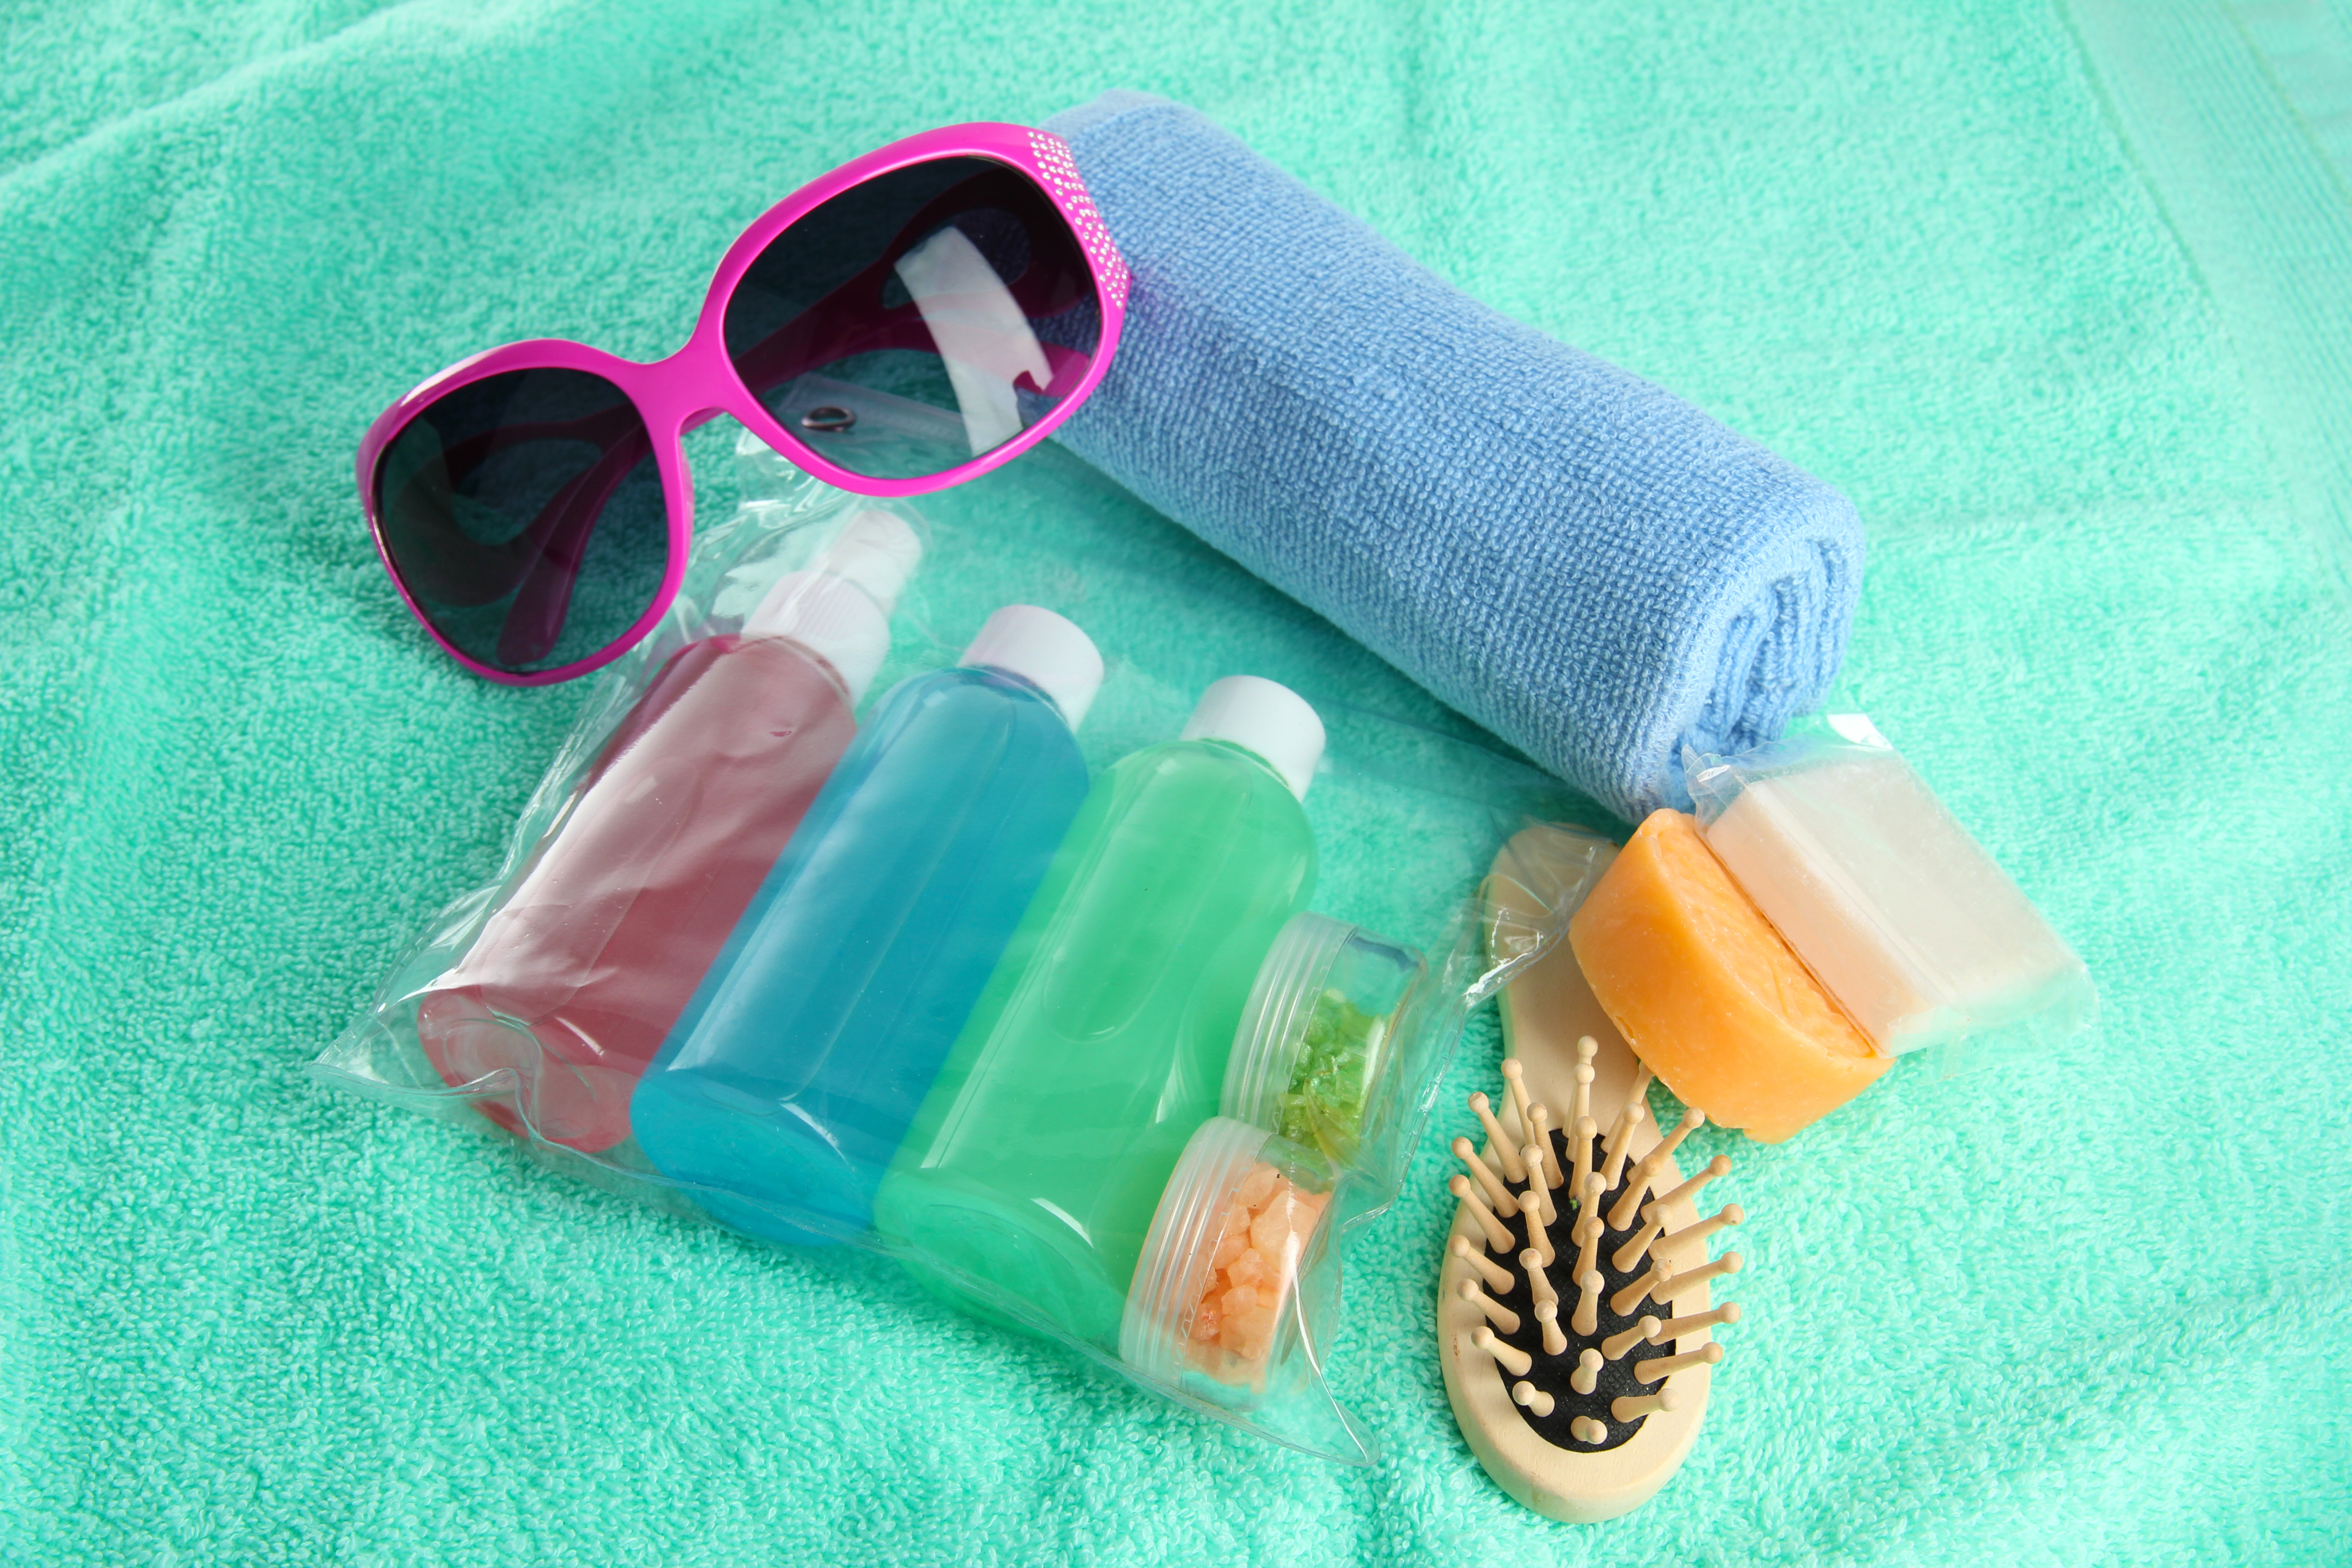 size of toiletry bag